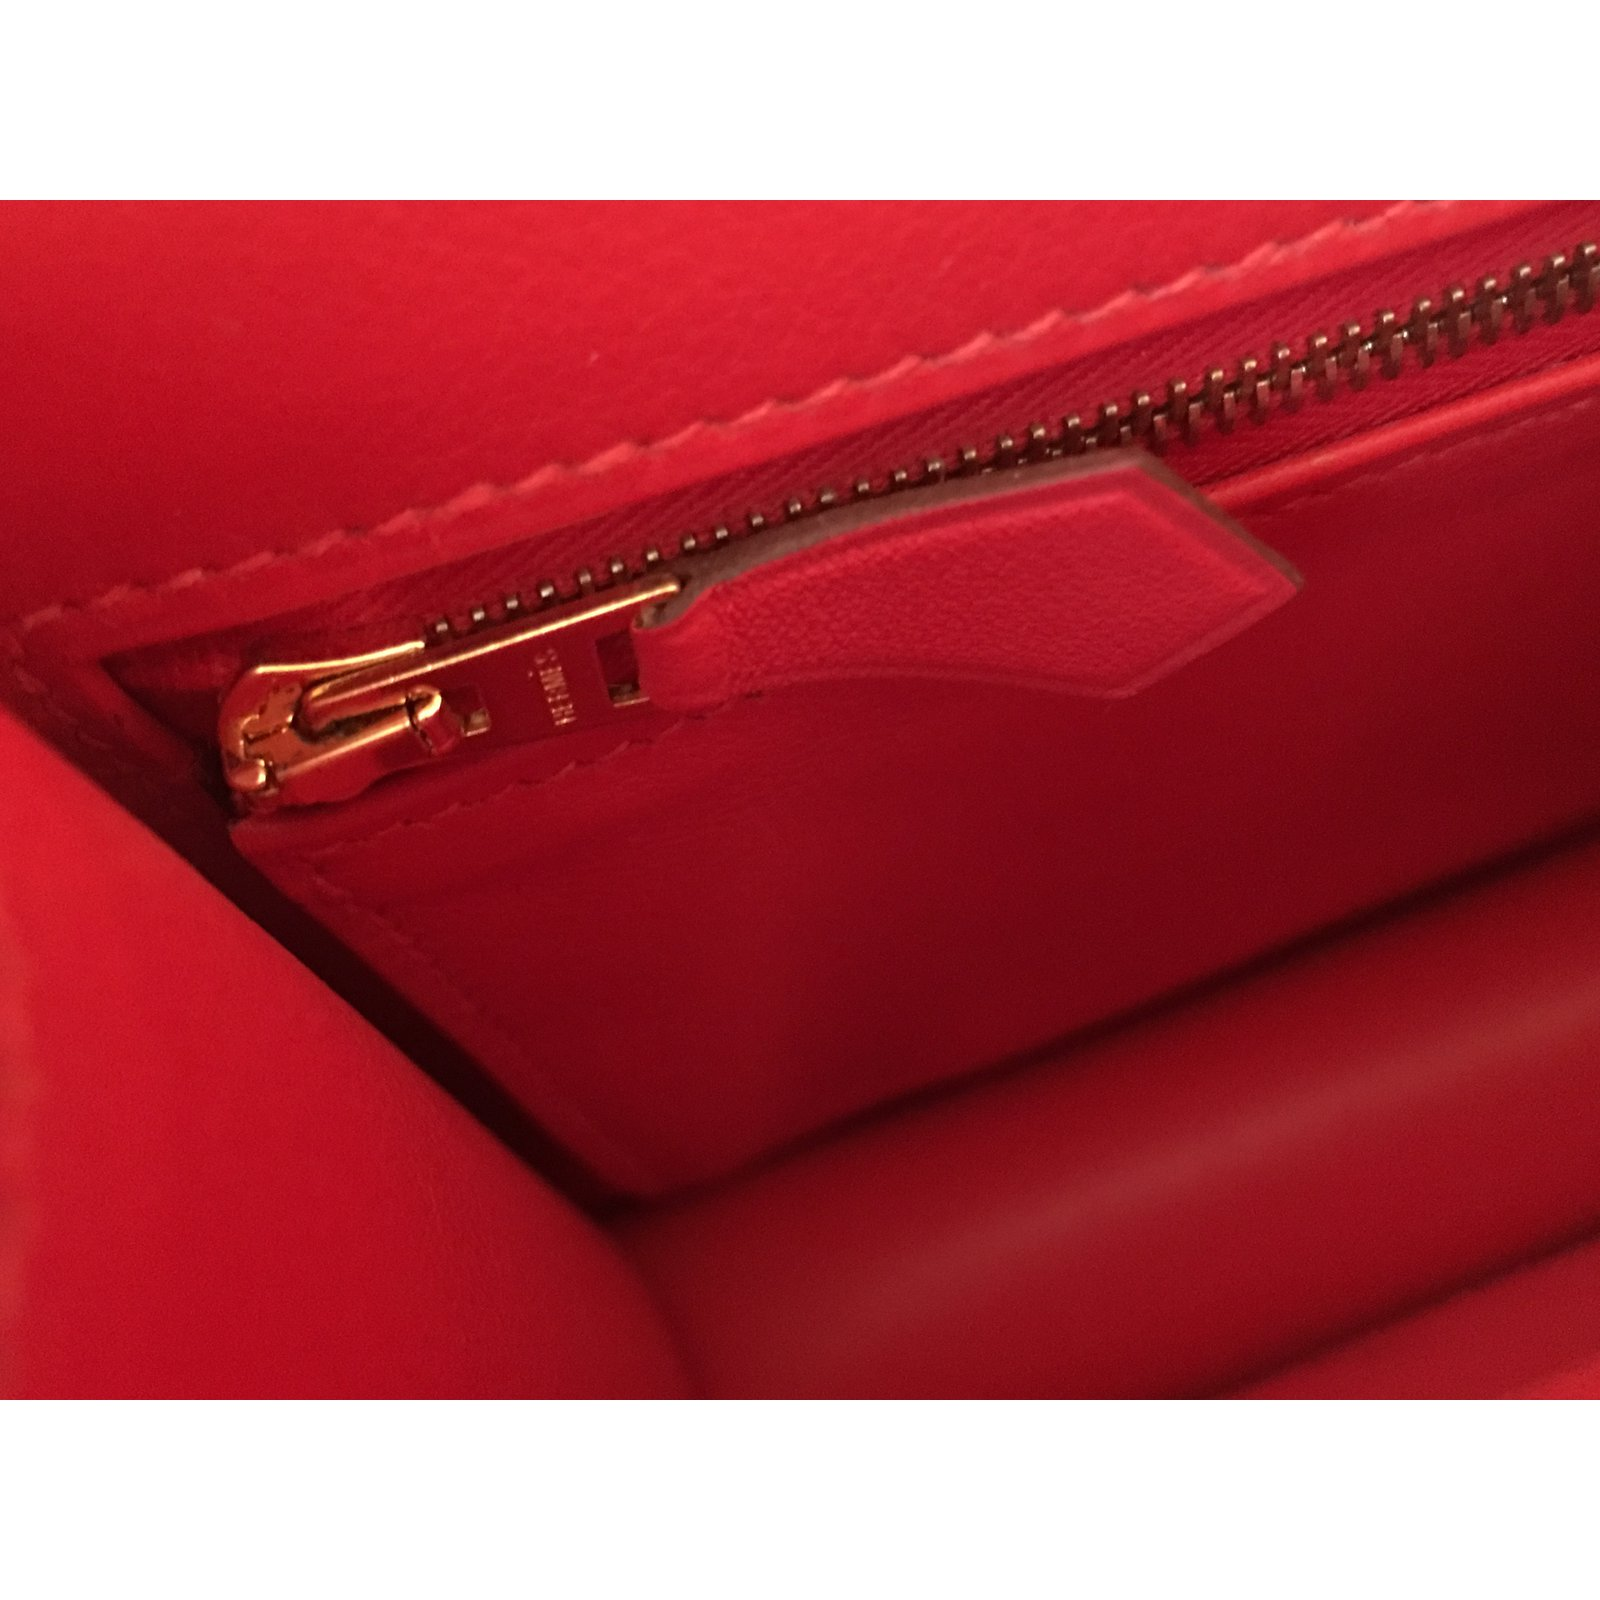 Hermès Hermes Constance 24cm Suede Leather Bag with Rose Gold hardware  Handbags Suede Red 8d52d3107e75c